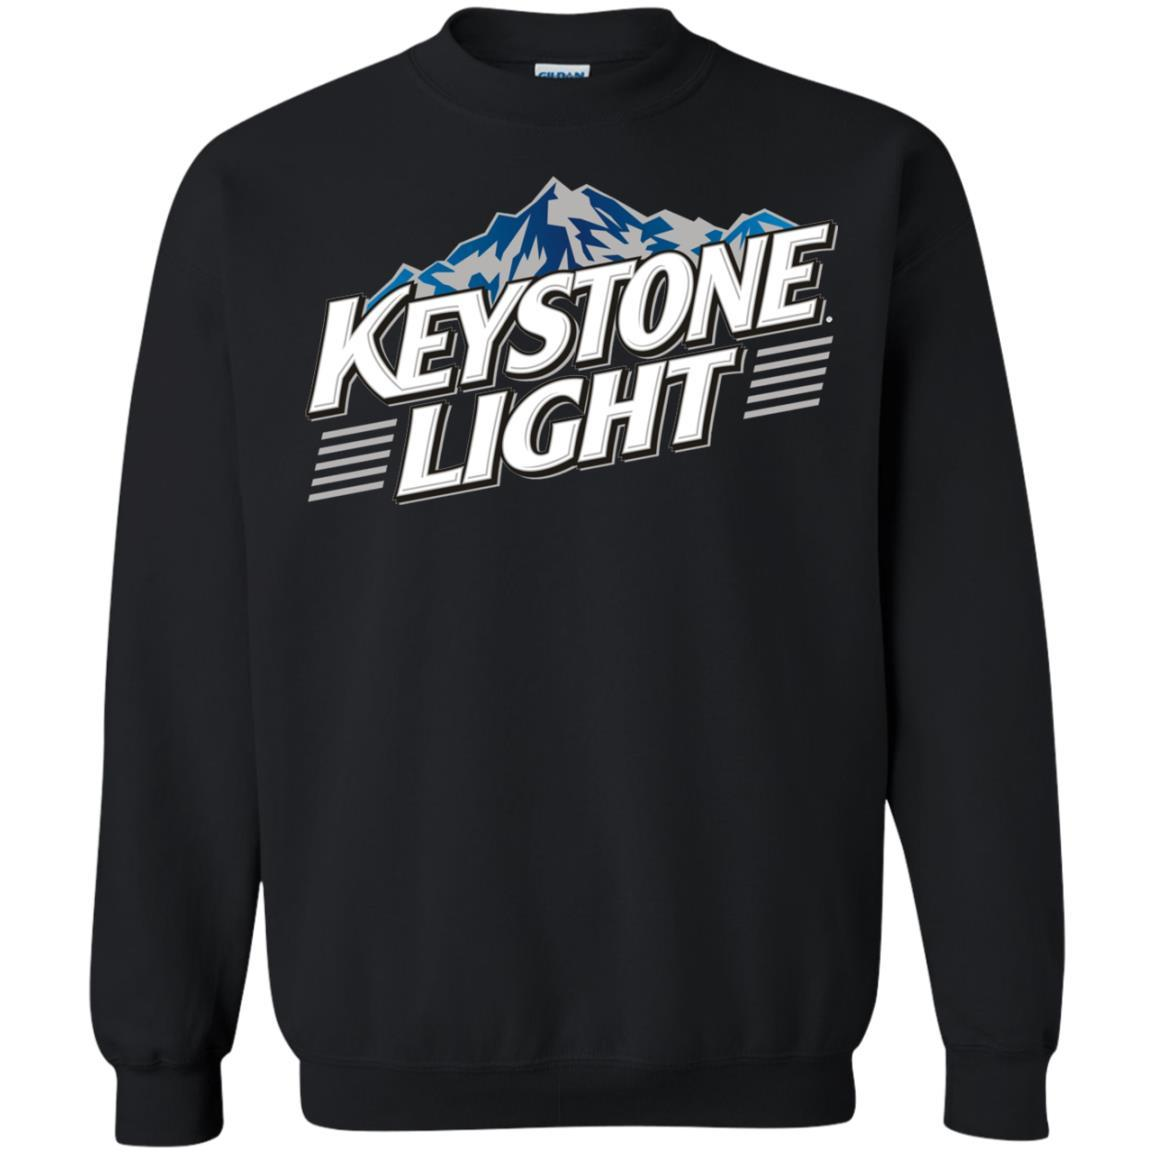 Keystone Light Beer - Pullover Sweatshirt Style / Color / Size